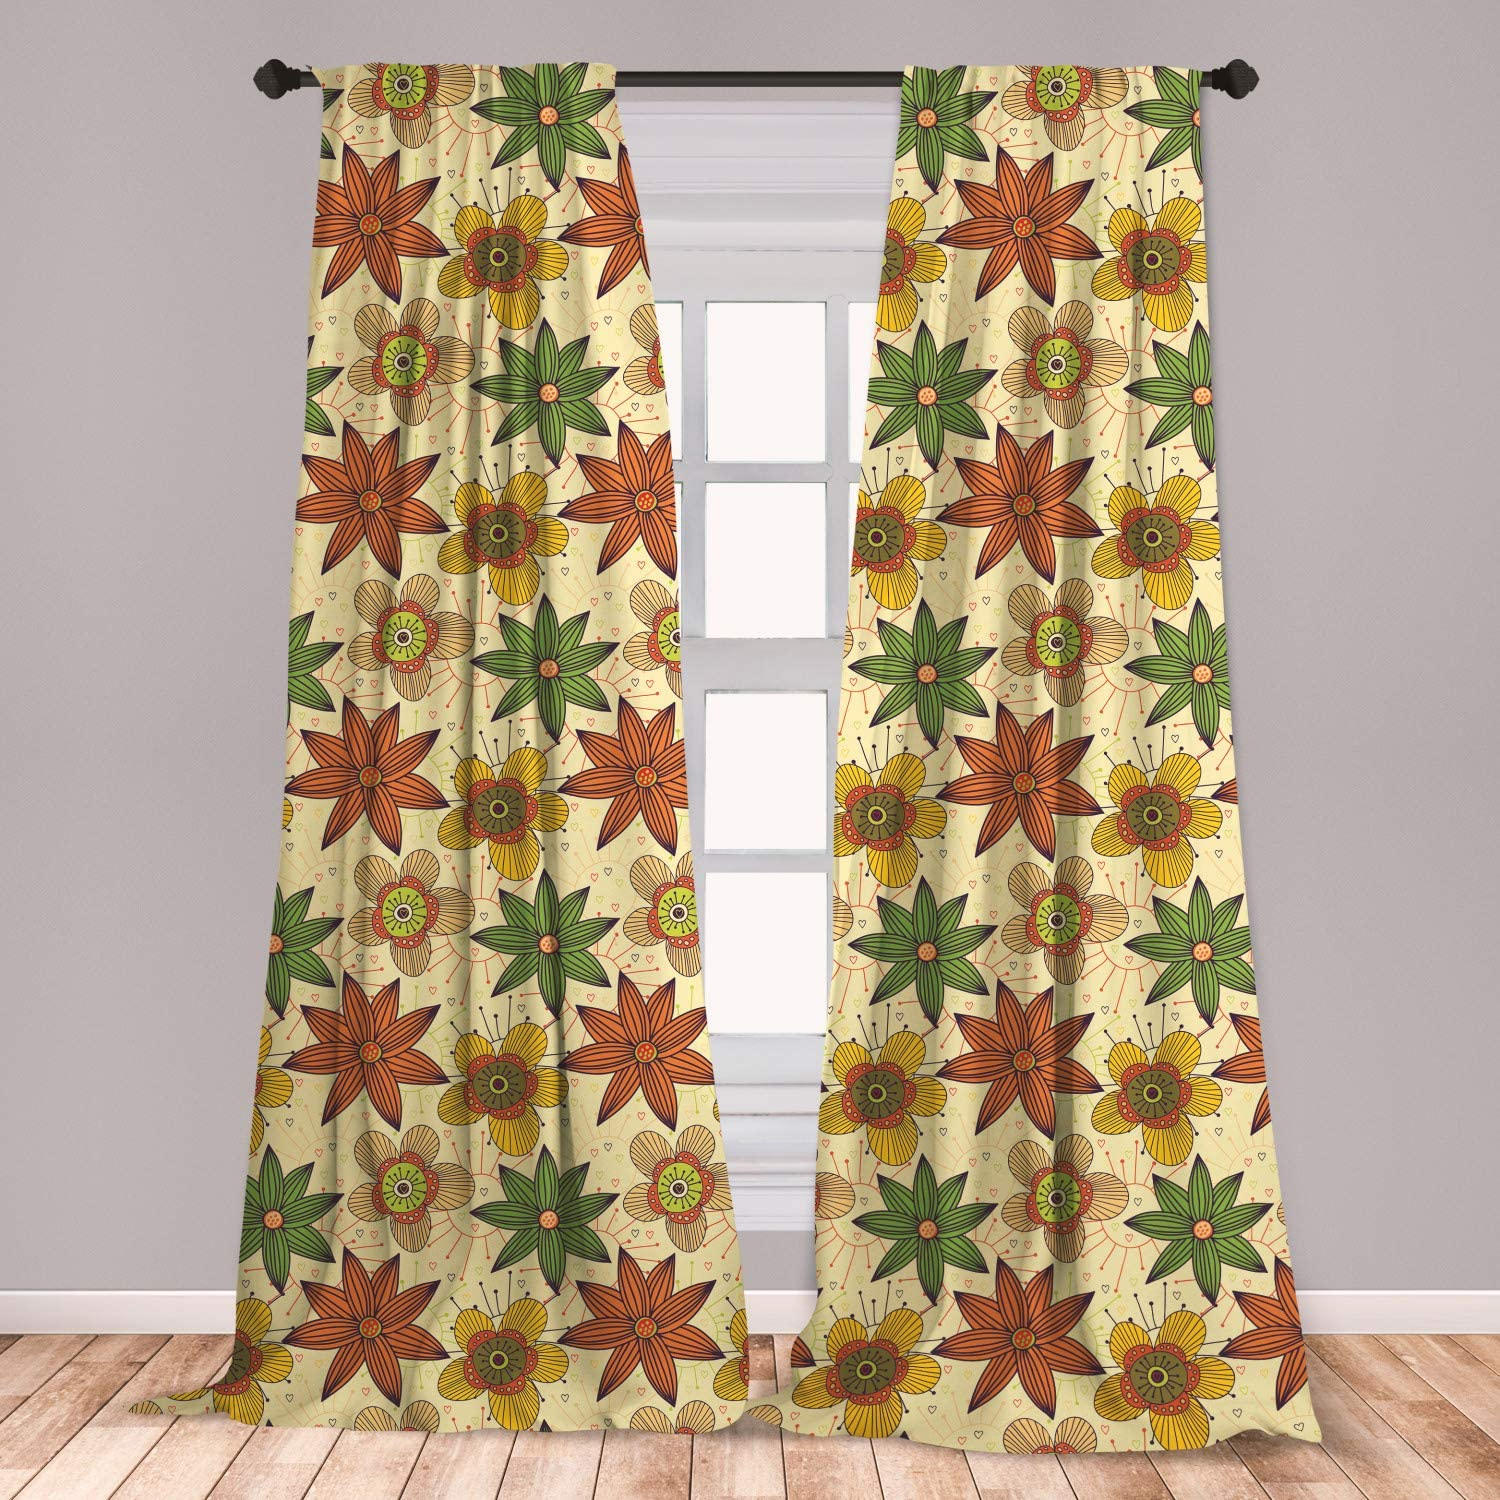 Lunarable Autumn Fall 2 Panel Curtain Set, Floral Arrangement Pattern with Hearts and Sun Background Love Themed Image, Lightweight Window Treatment Living Room Bedroom Decor, 56